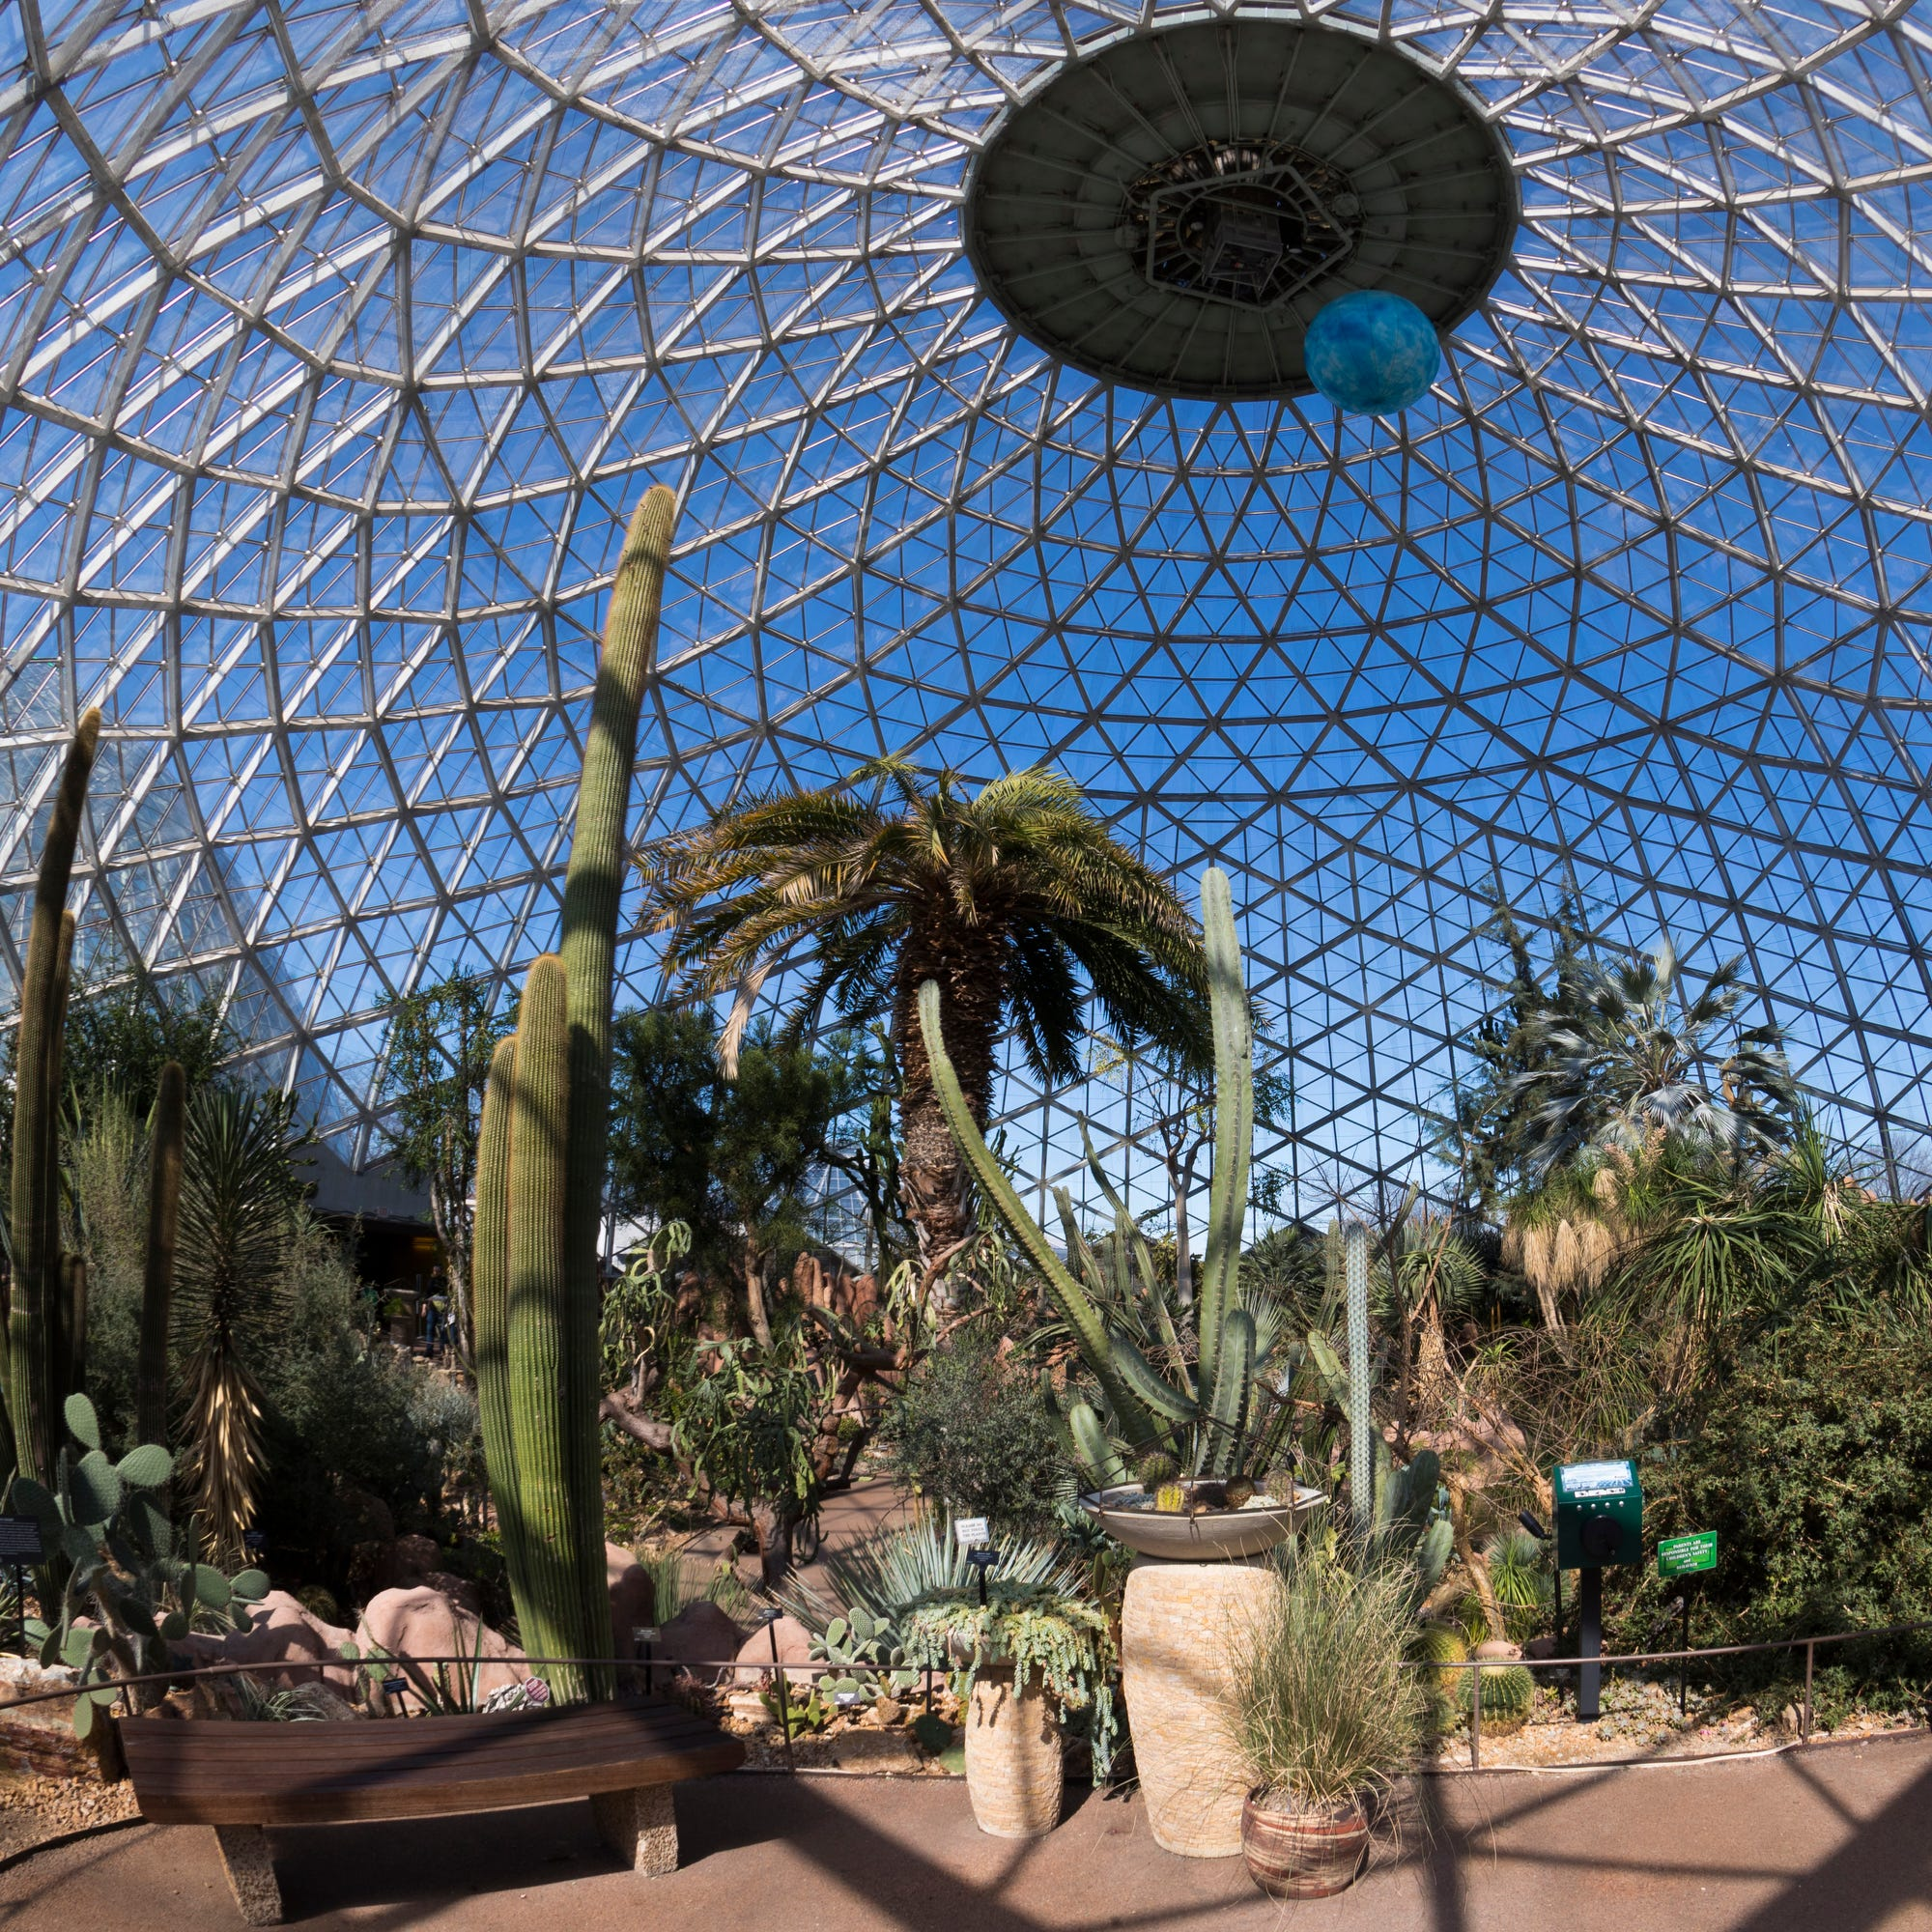 Milwaukee's Mitchell Park Domes could be saved and repaired with historic preservation tax credits